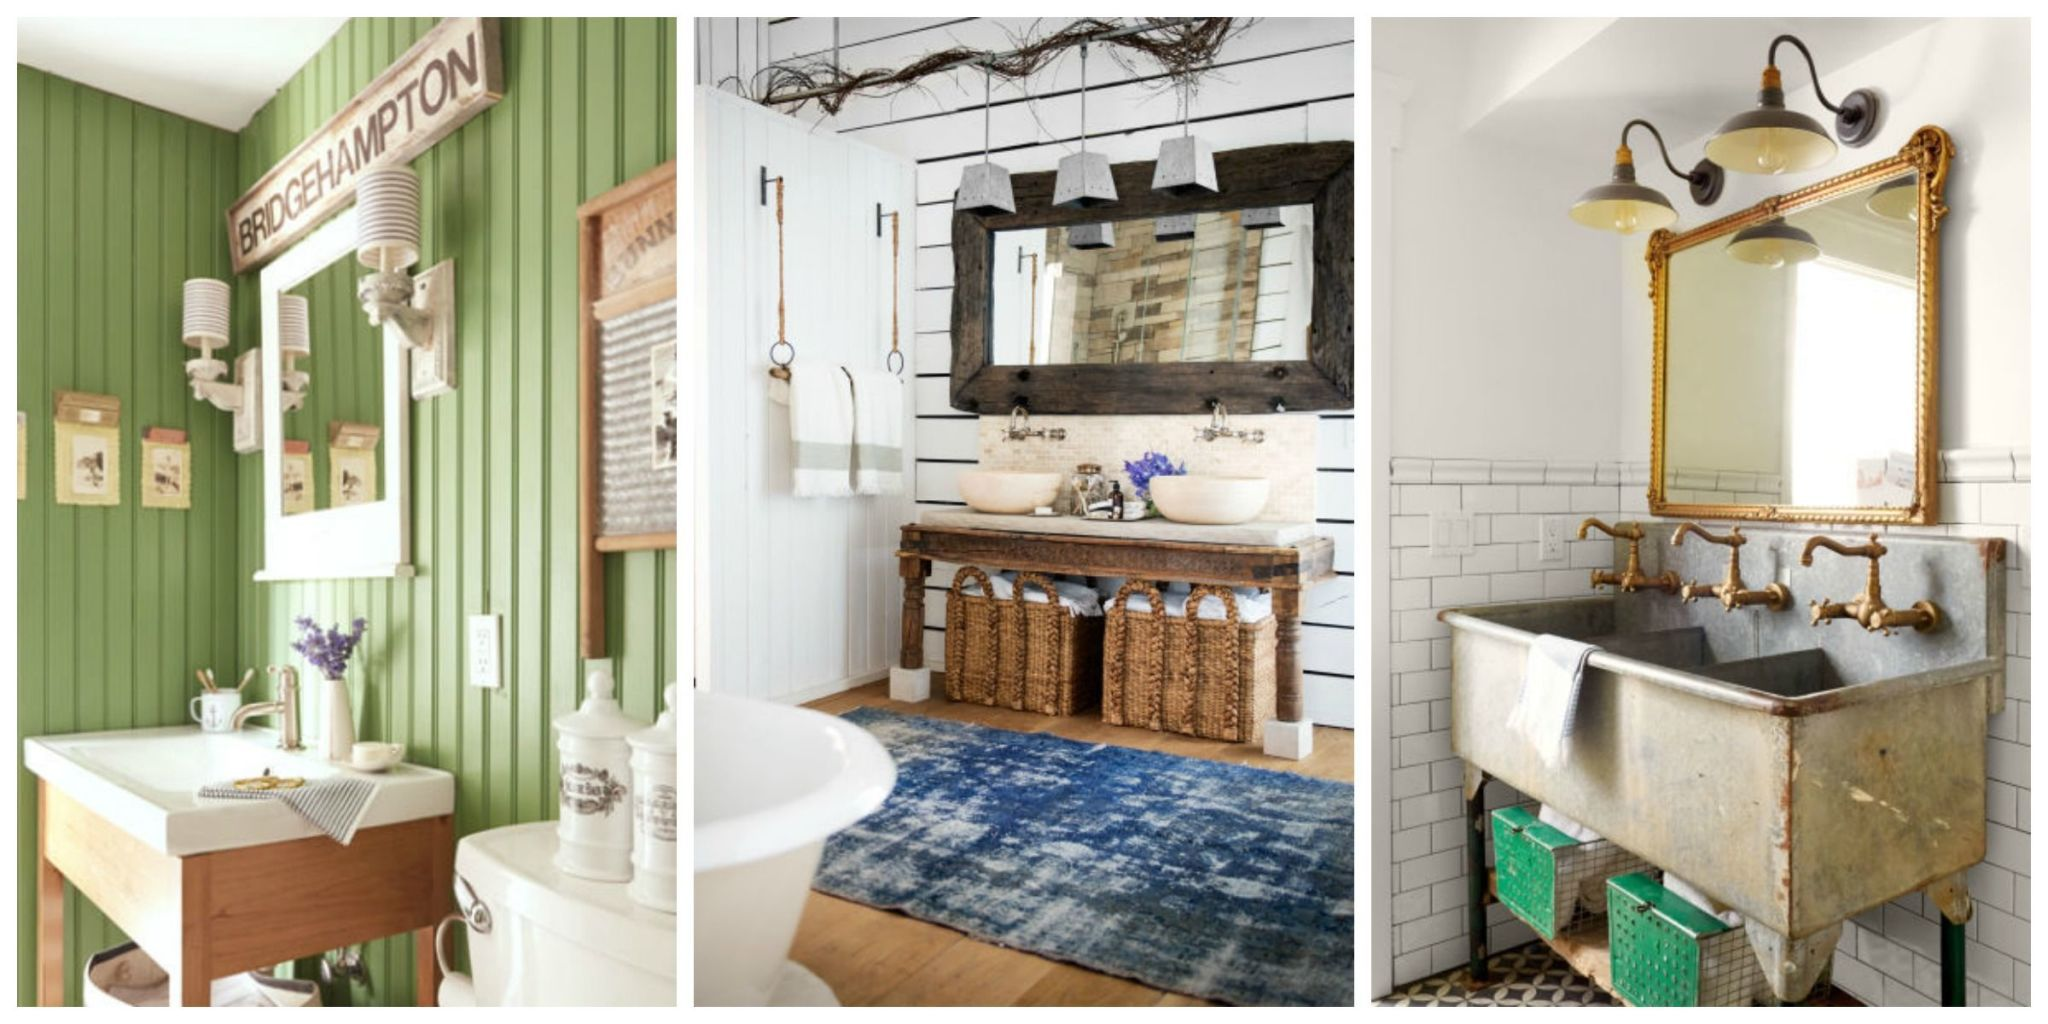 bathroom decorating ideas from vintage fixtures to bold wallpaper patterns, these beautiful bathroom HFHLZLE